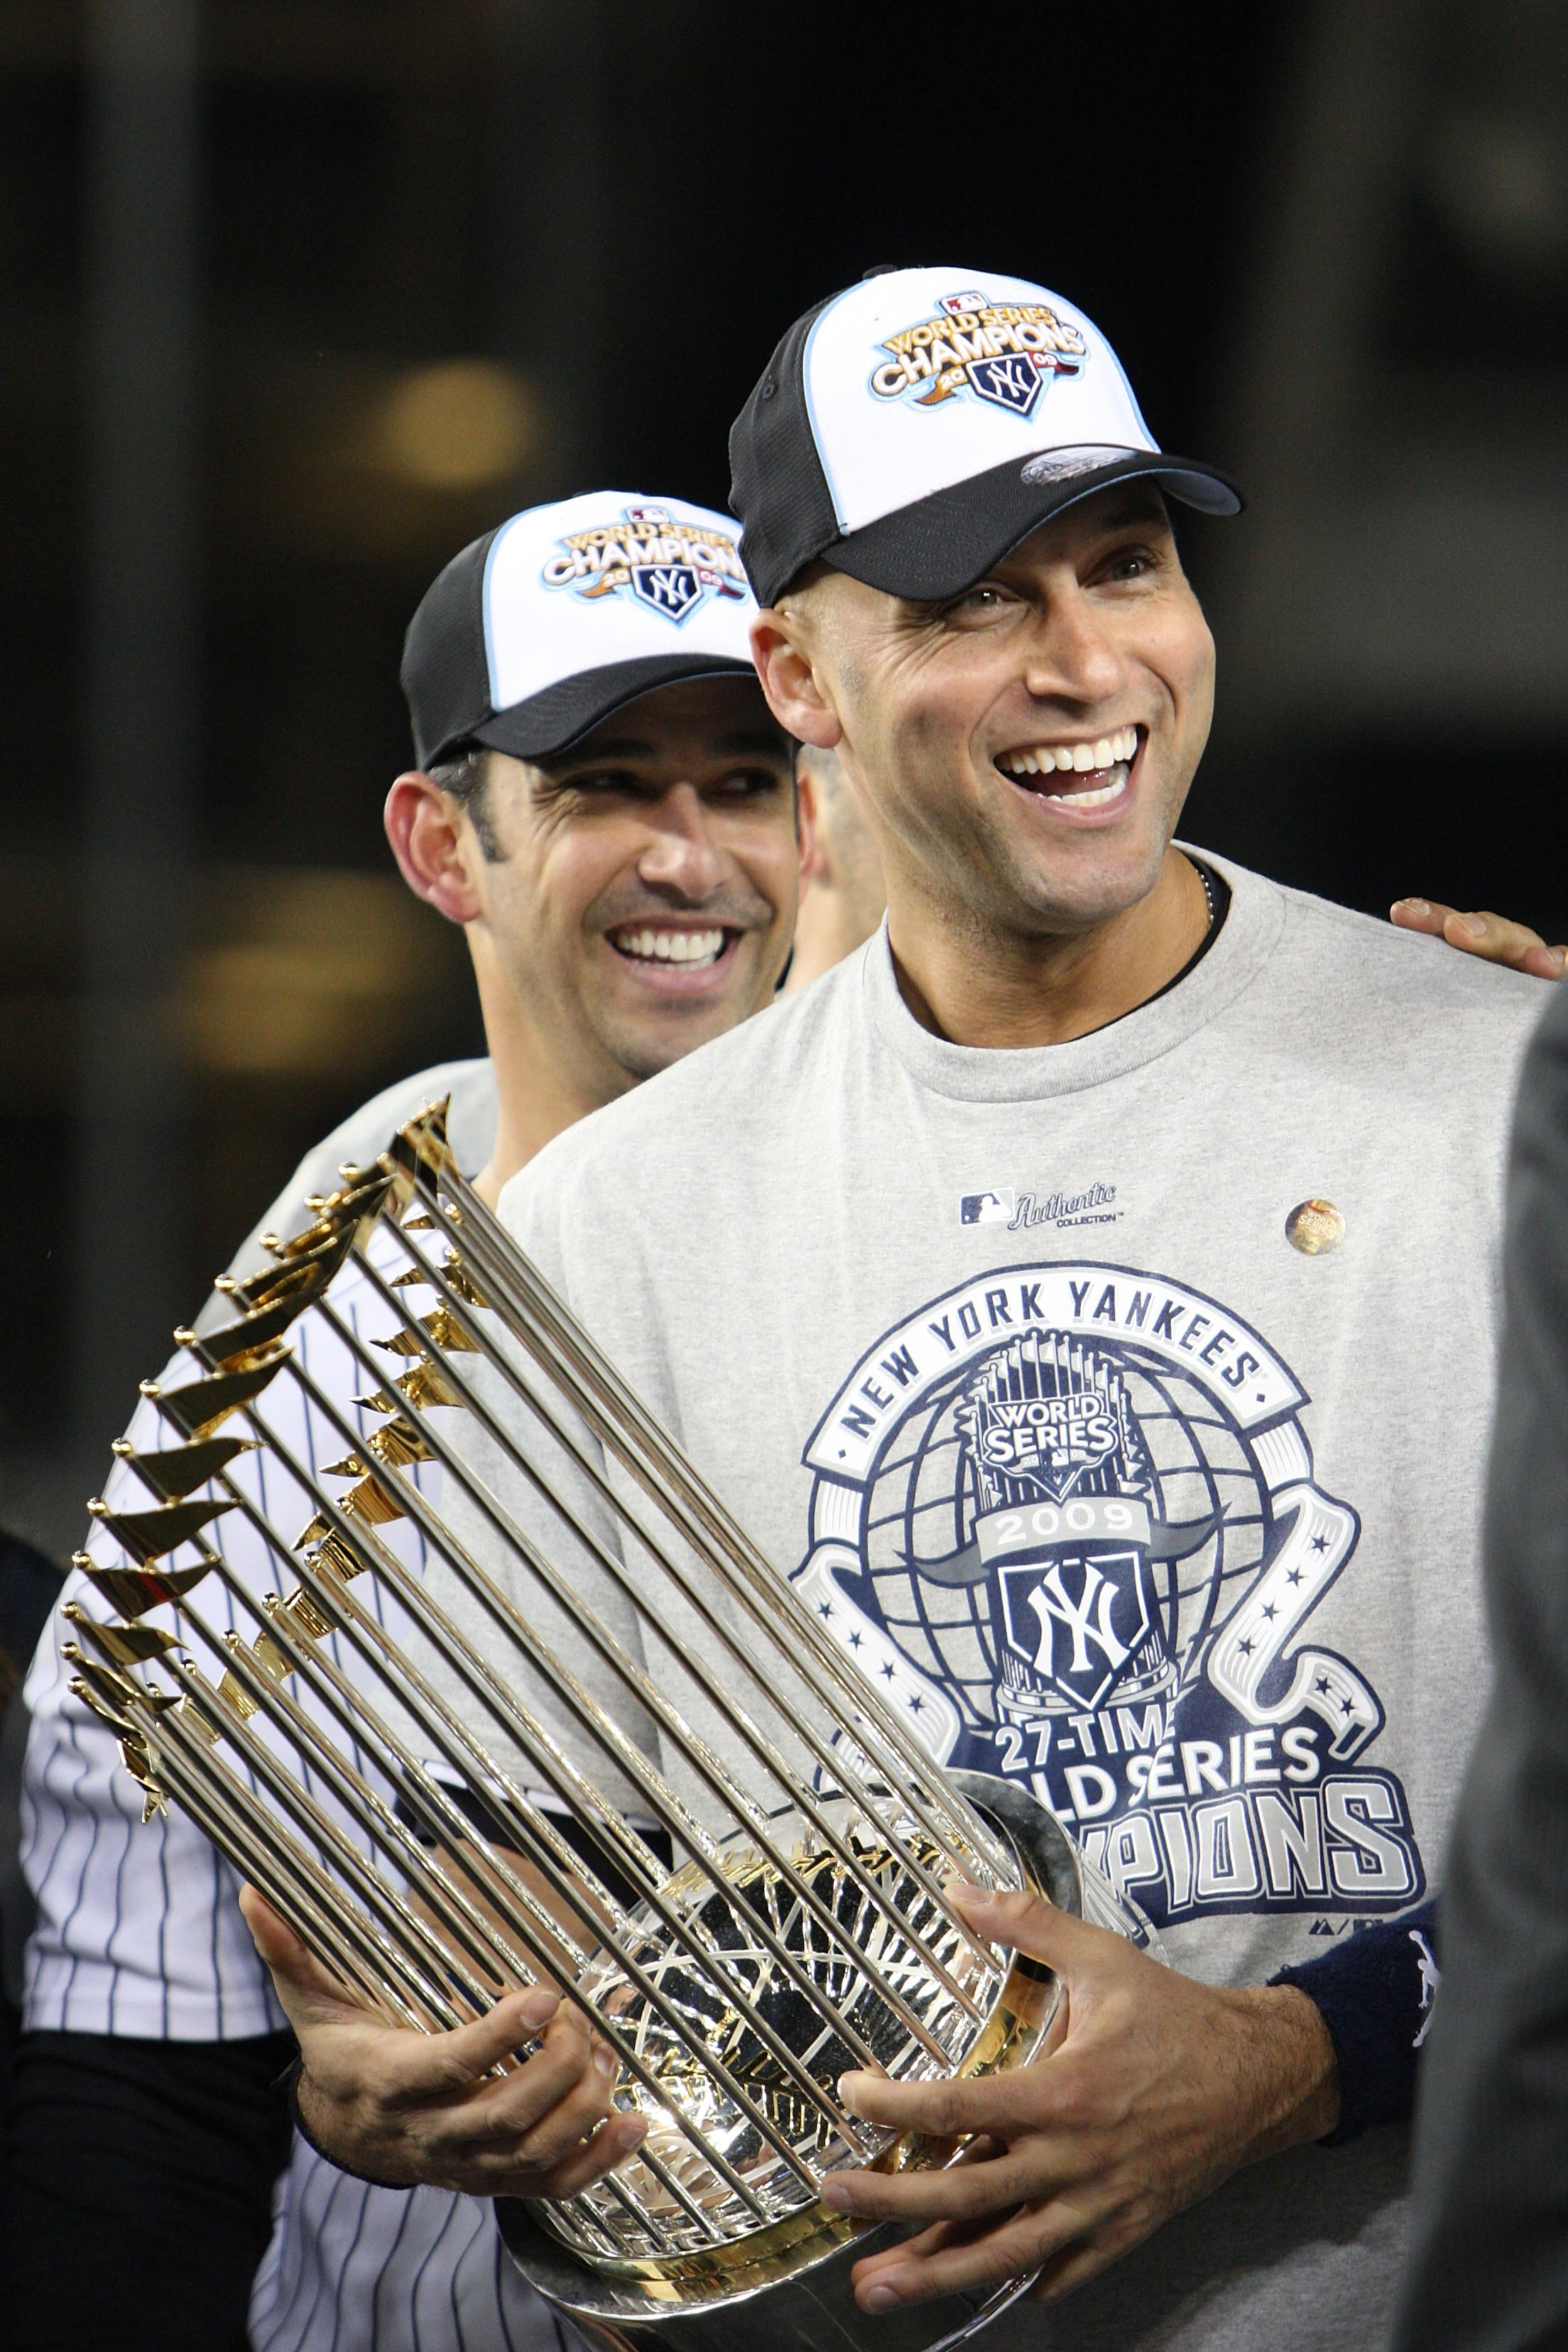 NEW YORK - NOVEMBER 04:  Derek Jeter #2 of the New York Yankees celebrates with the trophy after their 7-3 win against the Philadelphia Phillies in Game Six of the 2009 MLB World Series at Yankee Stadium on November 4, 2009 in the Bronx borough of New Yor